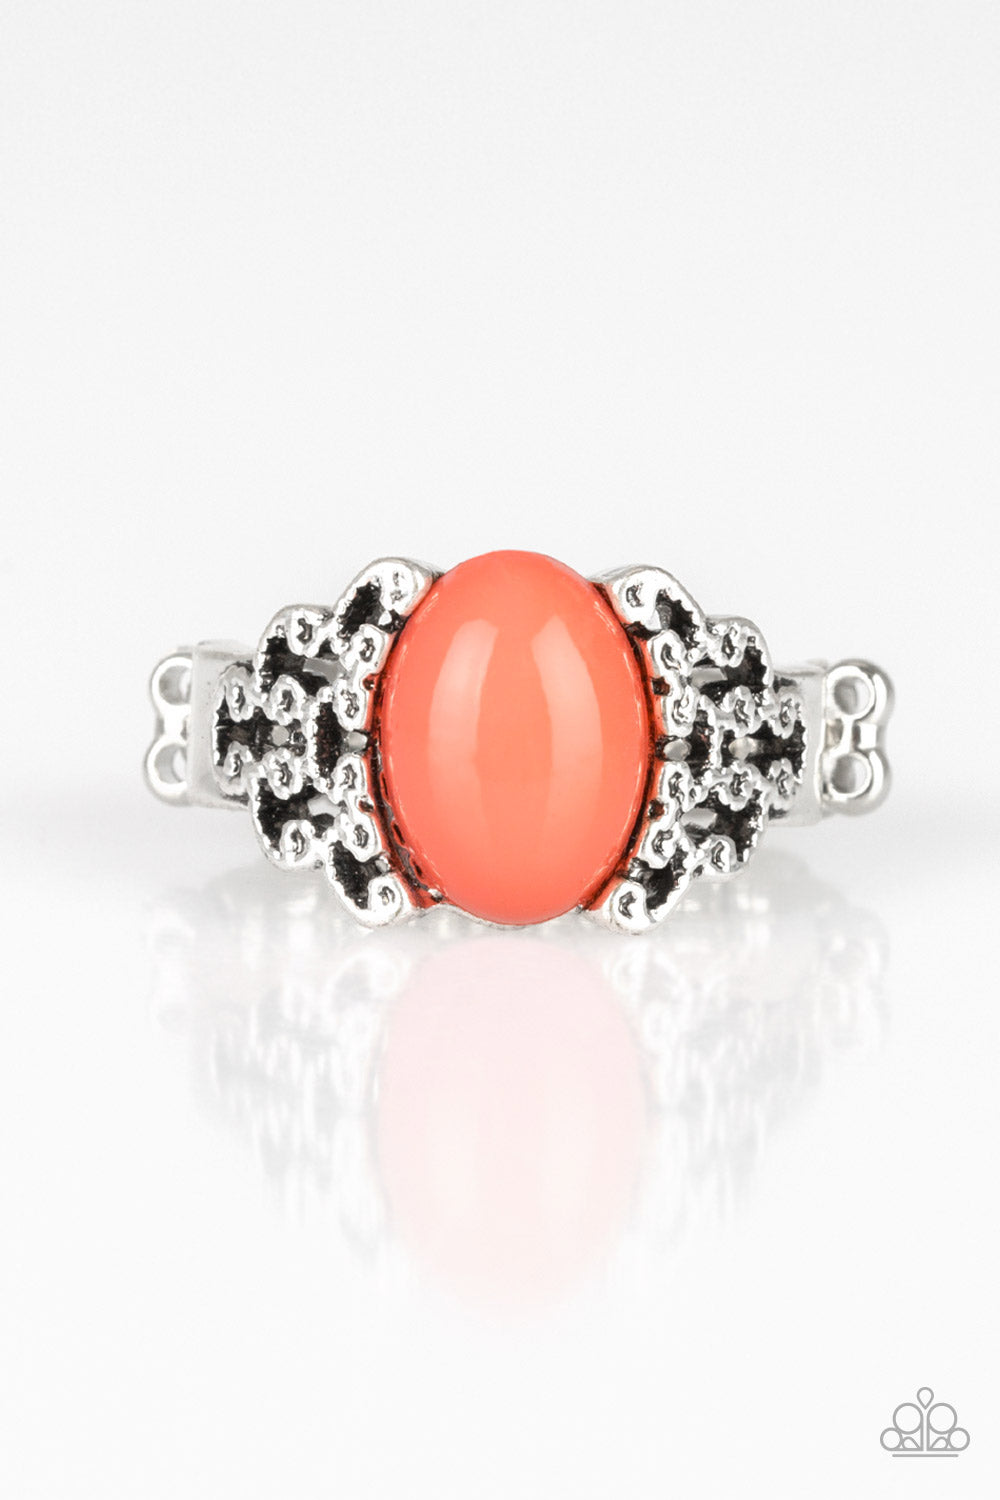 Paparazzi Accessories - Princess Problems - Orange Ring - JMJ Jewelry Collection